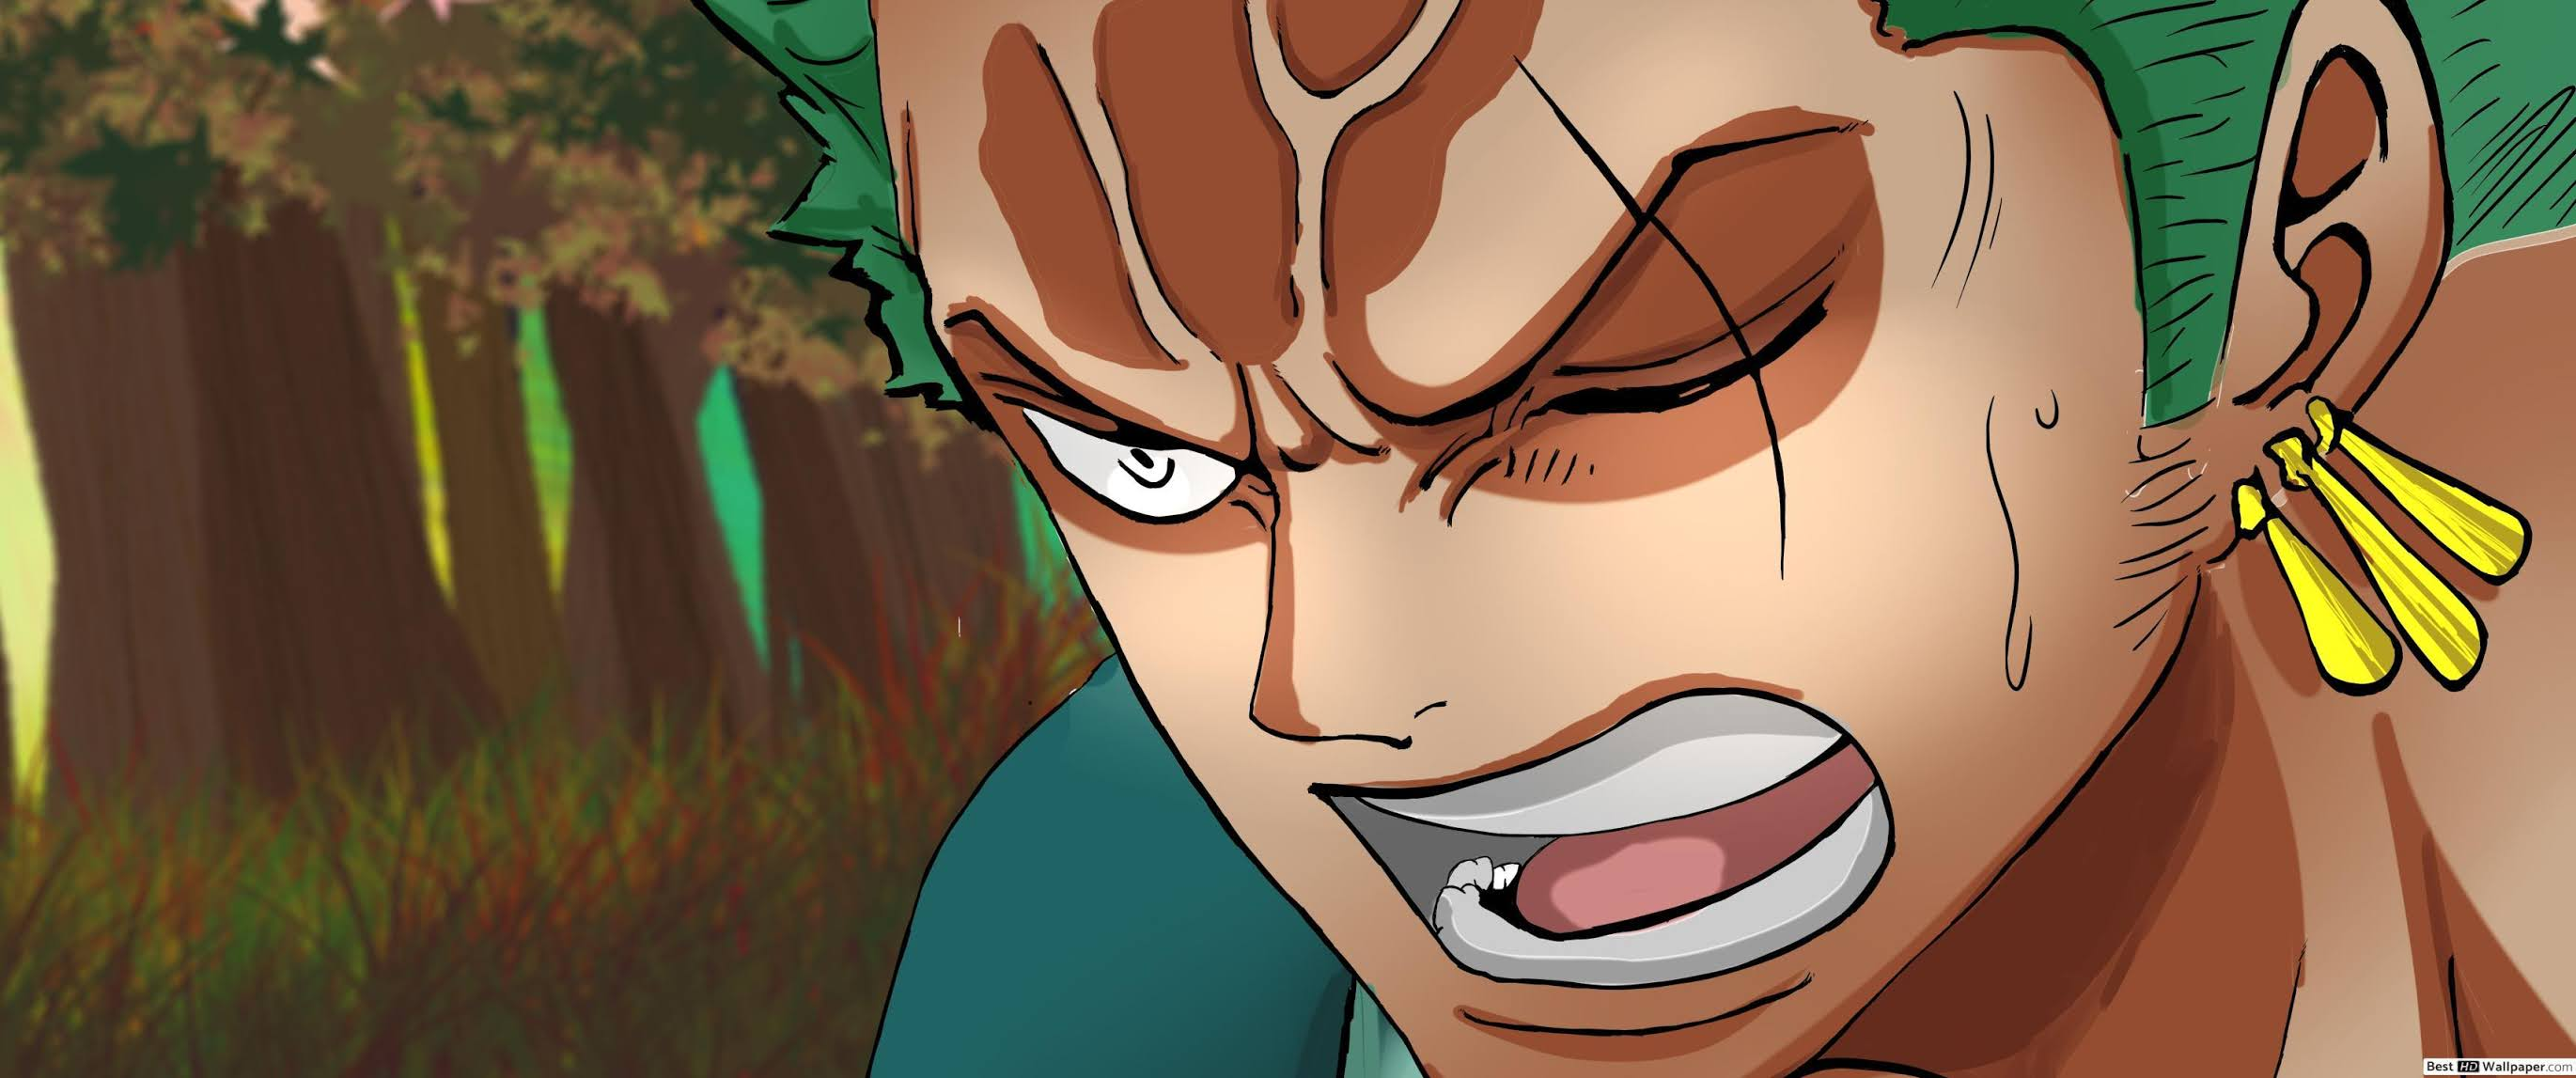 One Piece One Piece Zoro Wallpaper 4k Android Iphone Wano